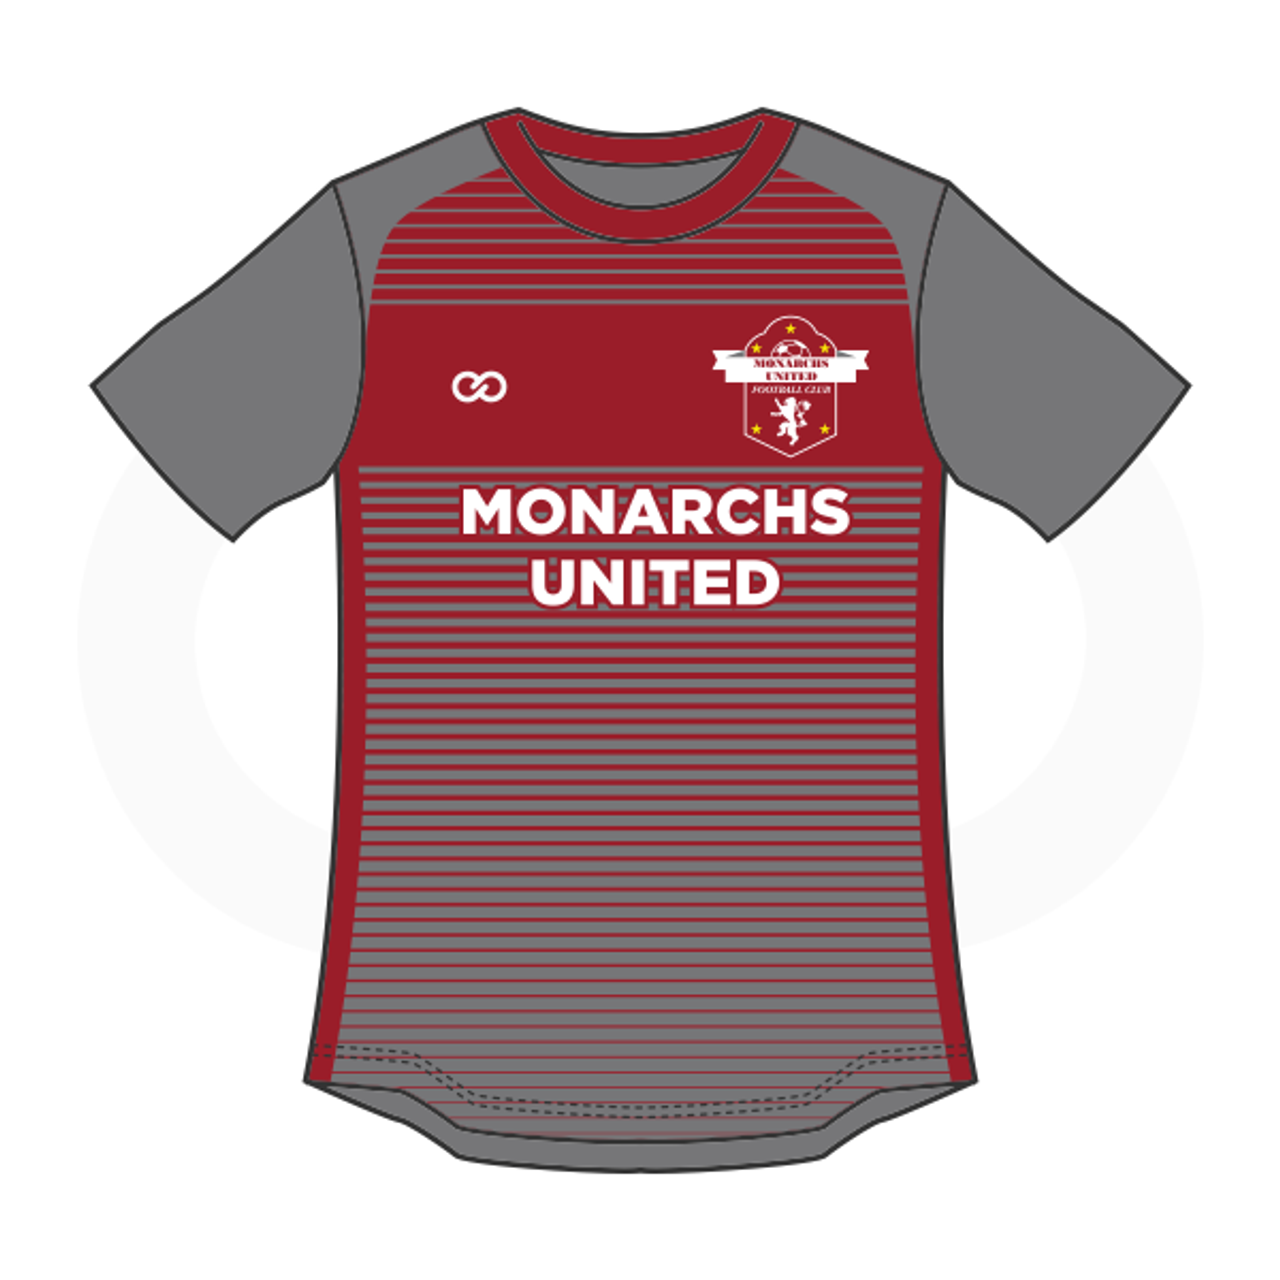 c9bb603c1 Monarchs United Soccer Jersey - Grey - Wooter Apparel